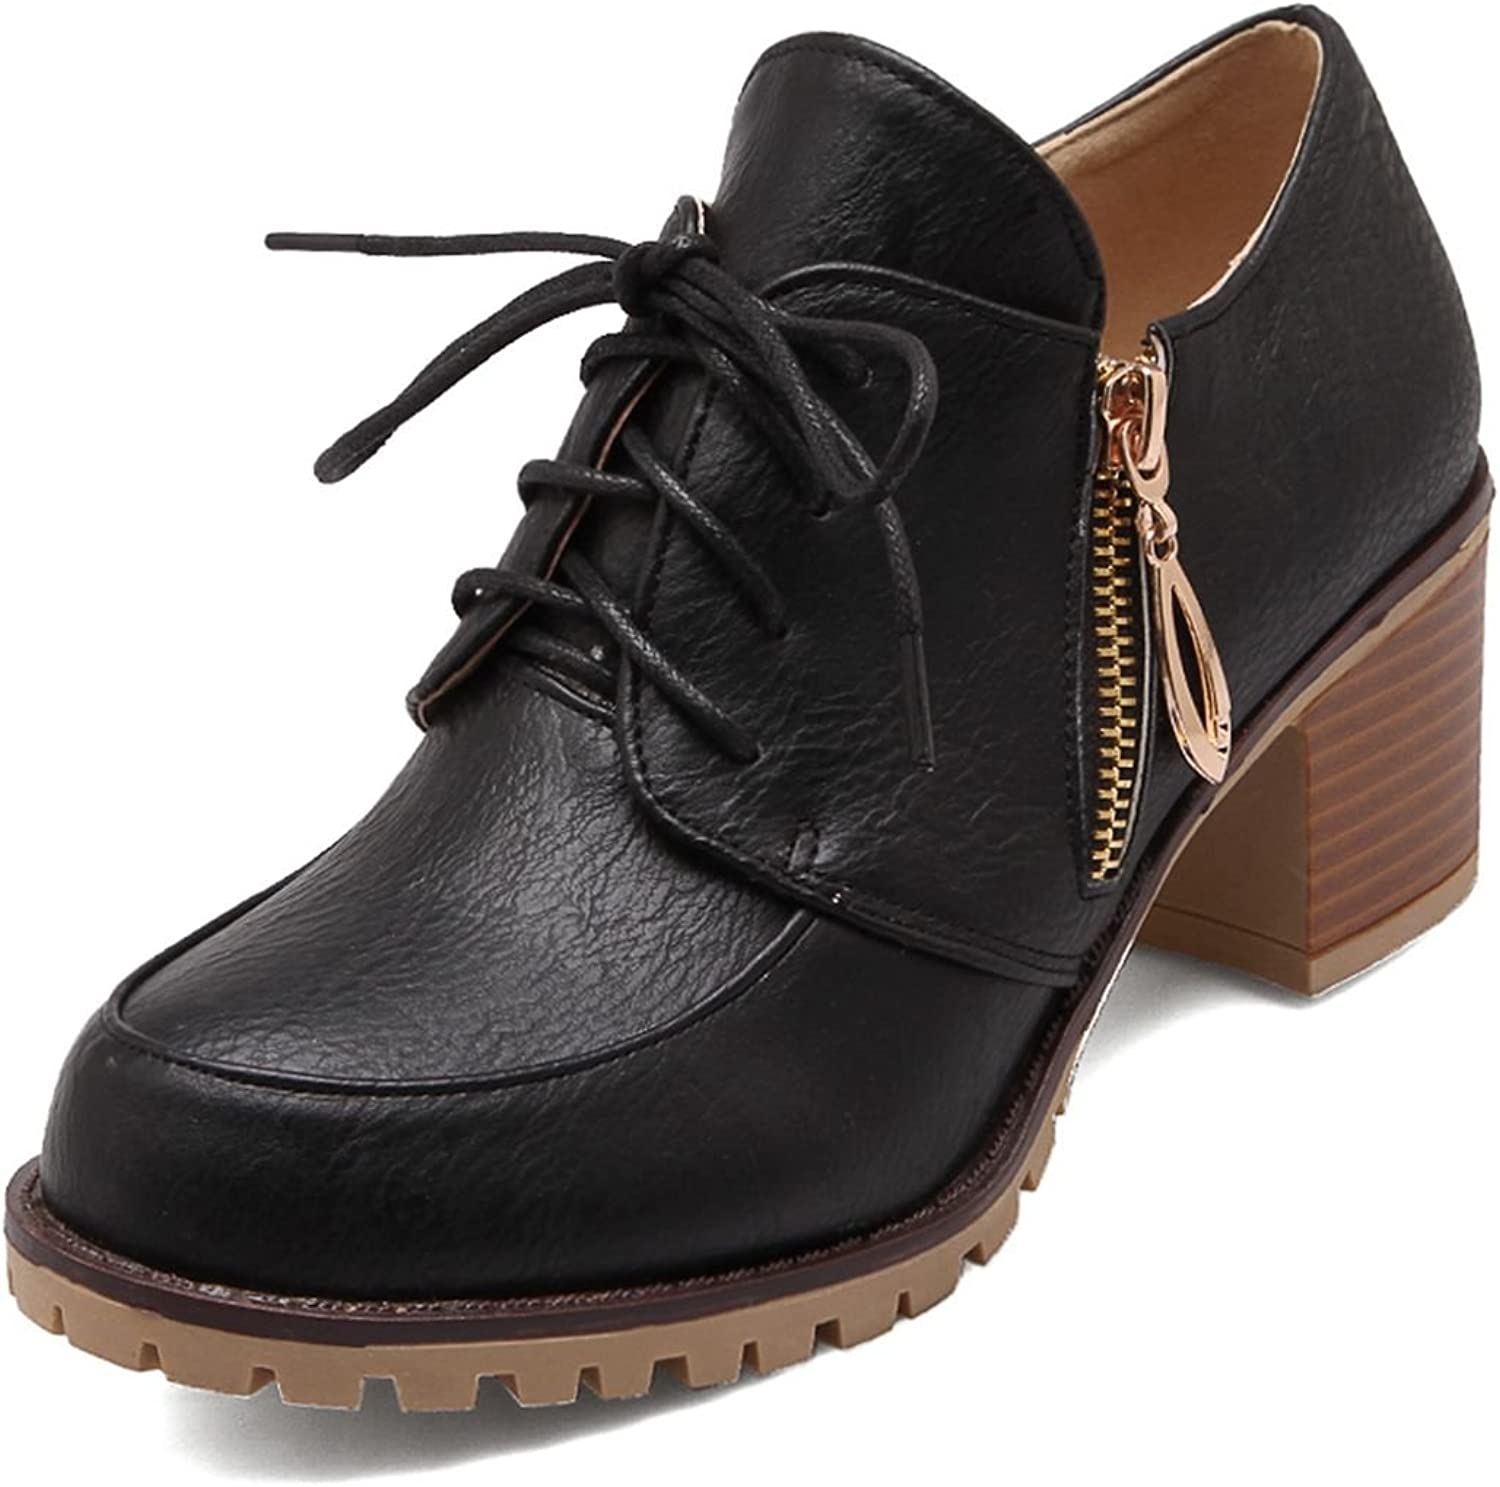 DoraTasia Women's Mid Flat Thick Heel PU Metal Pendant Lace Up Ankle Booties